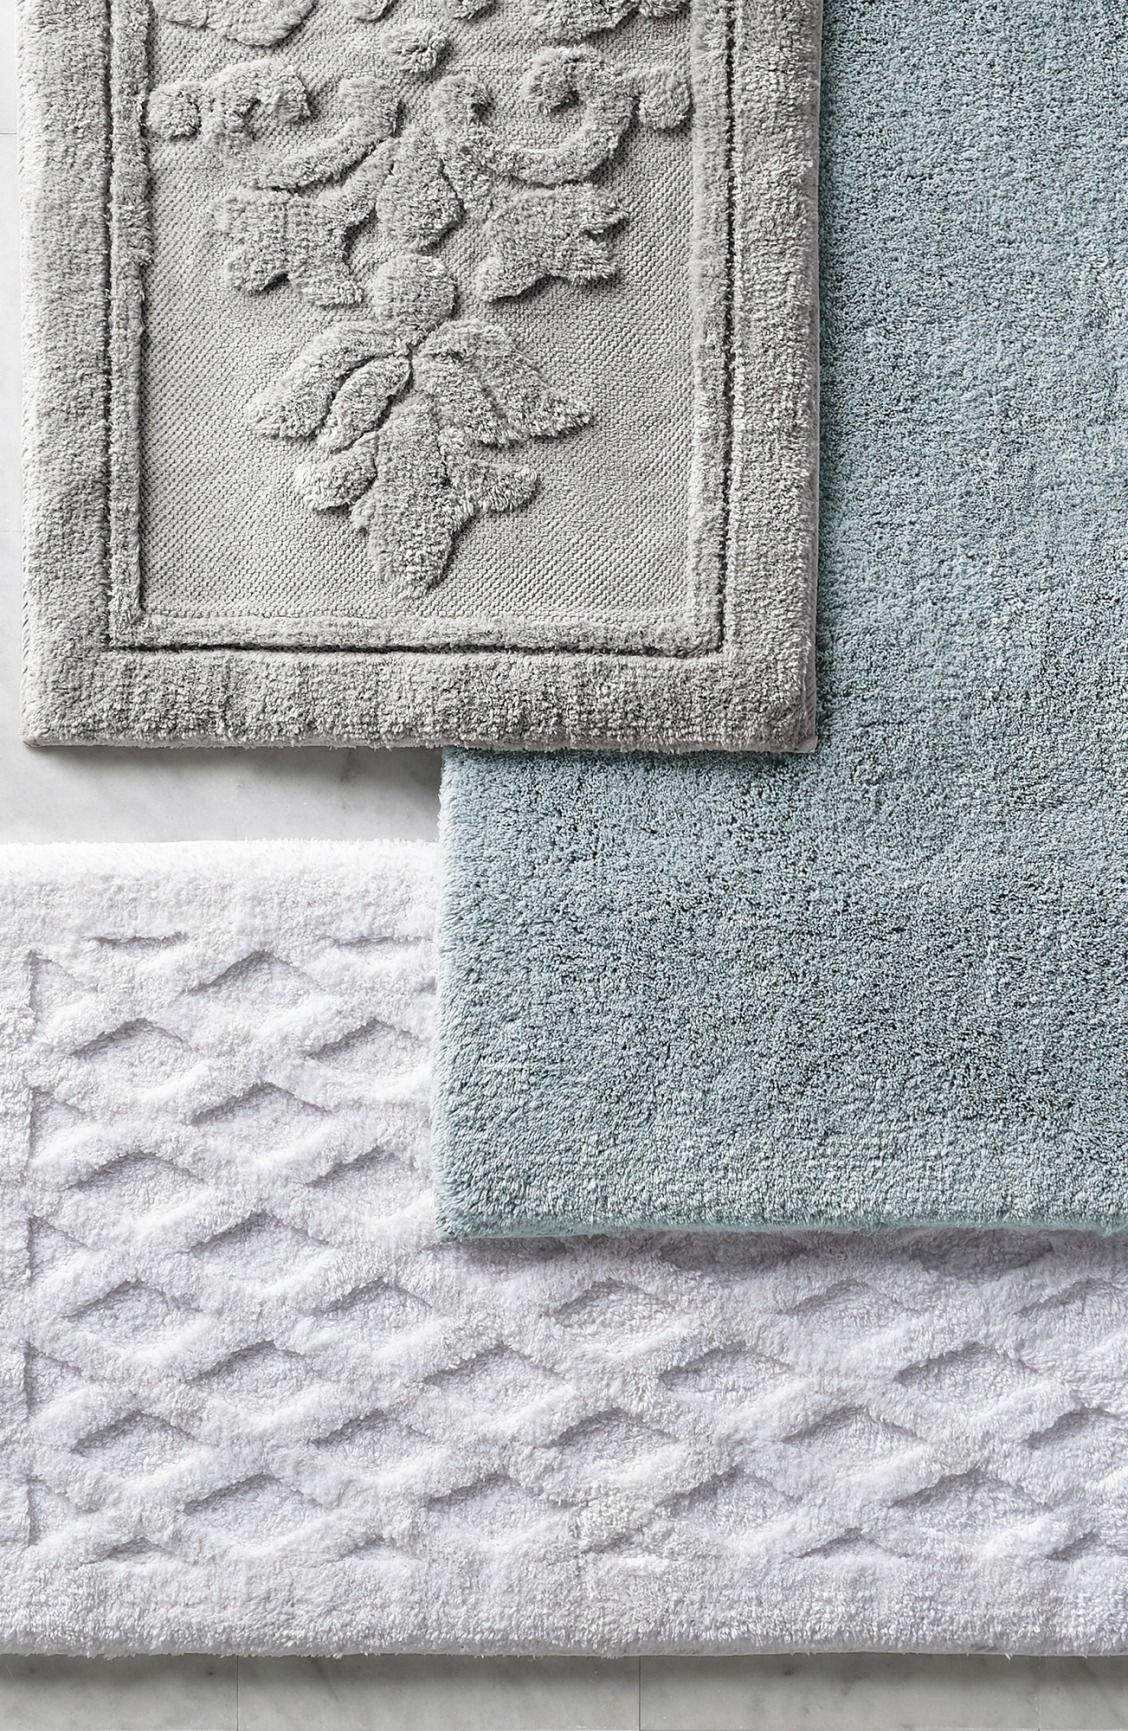 Everly Removable Memory Foam Bath Rug Frontgate Rugs Memory Foam Bath Rugs Rugs On Carpet